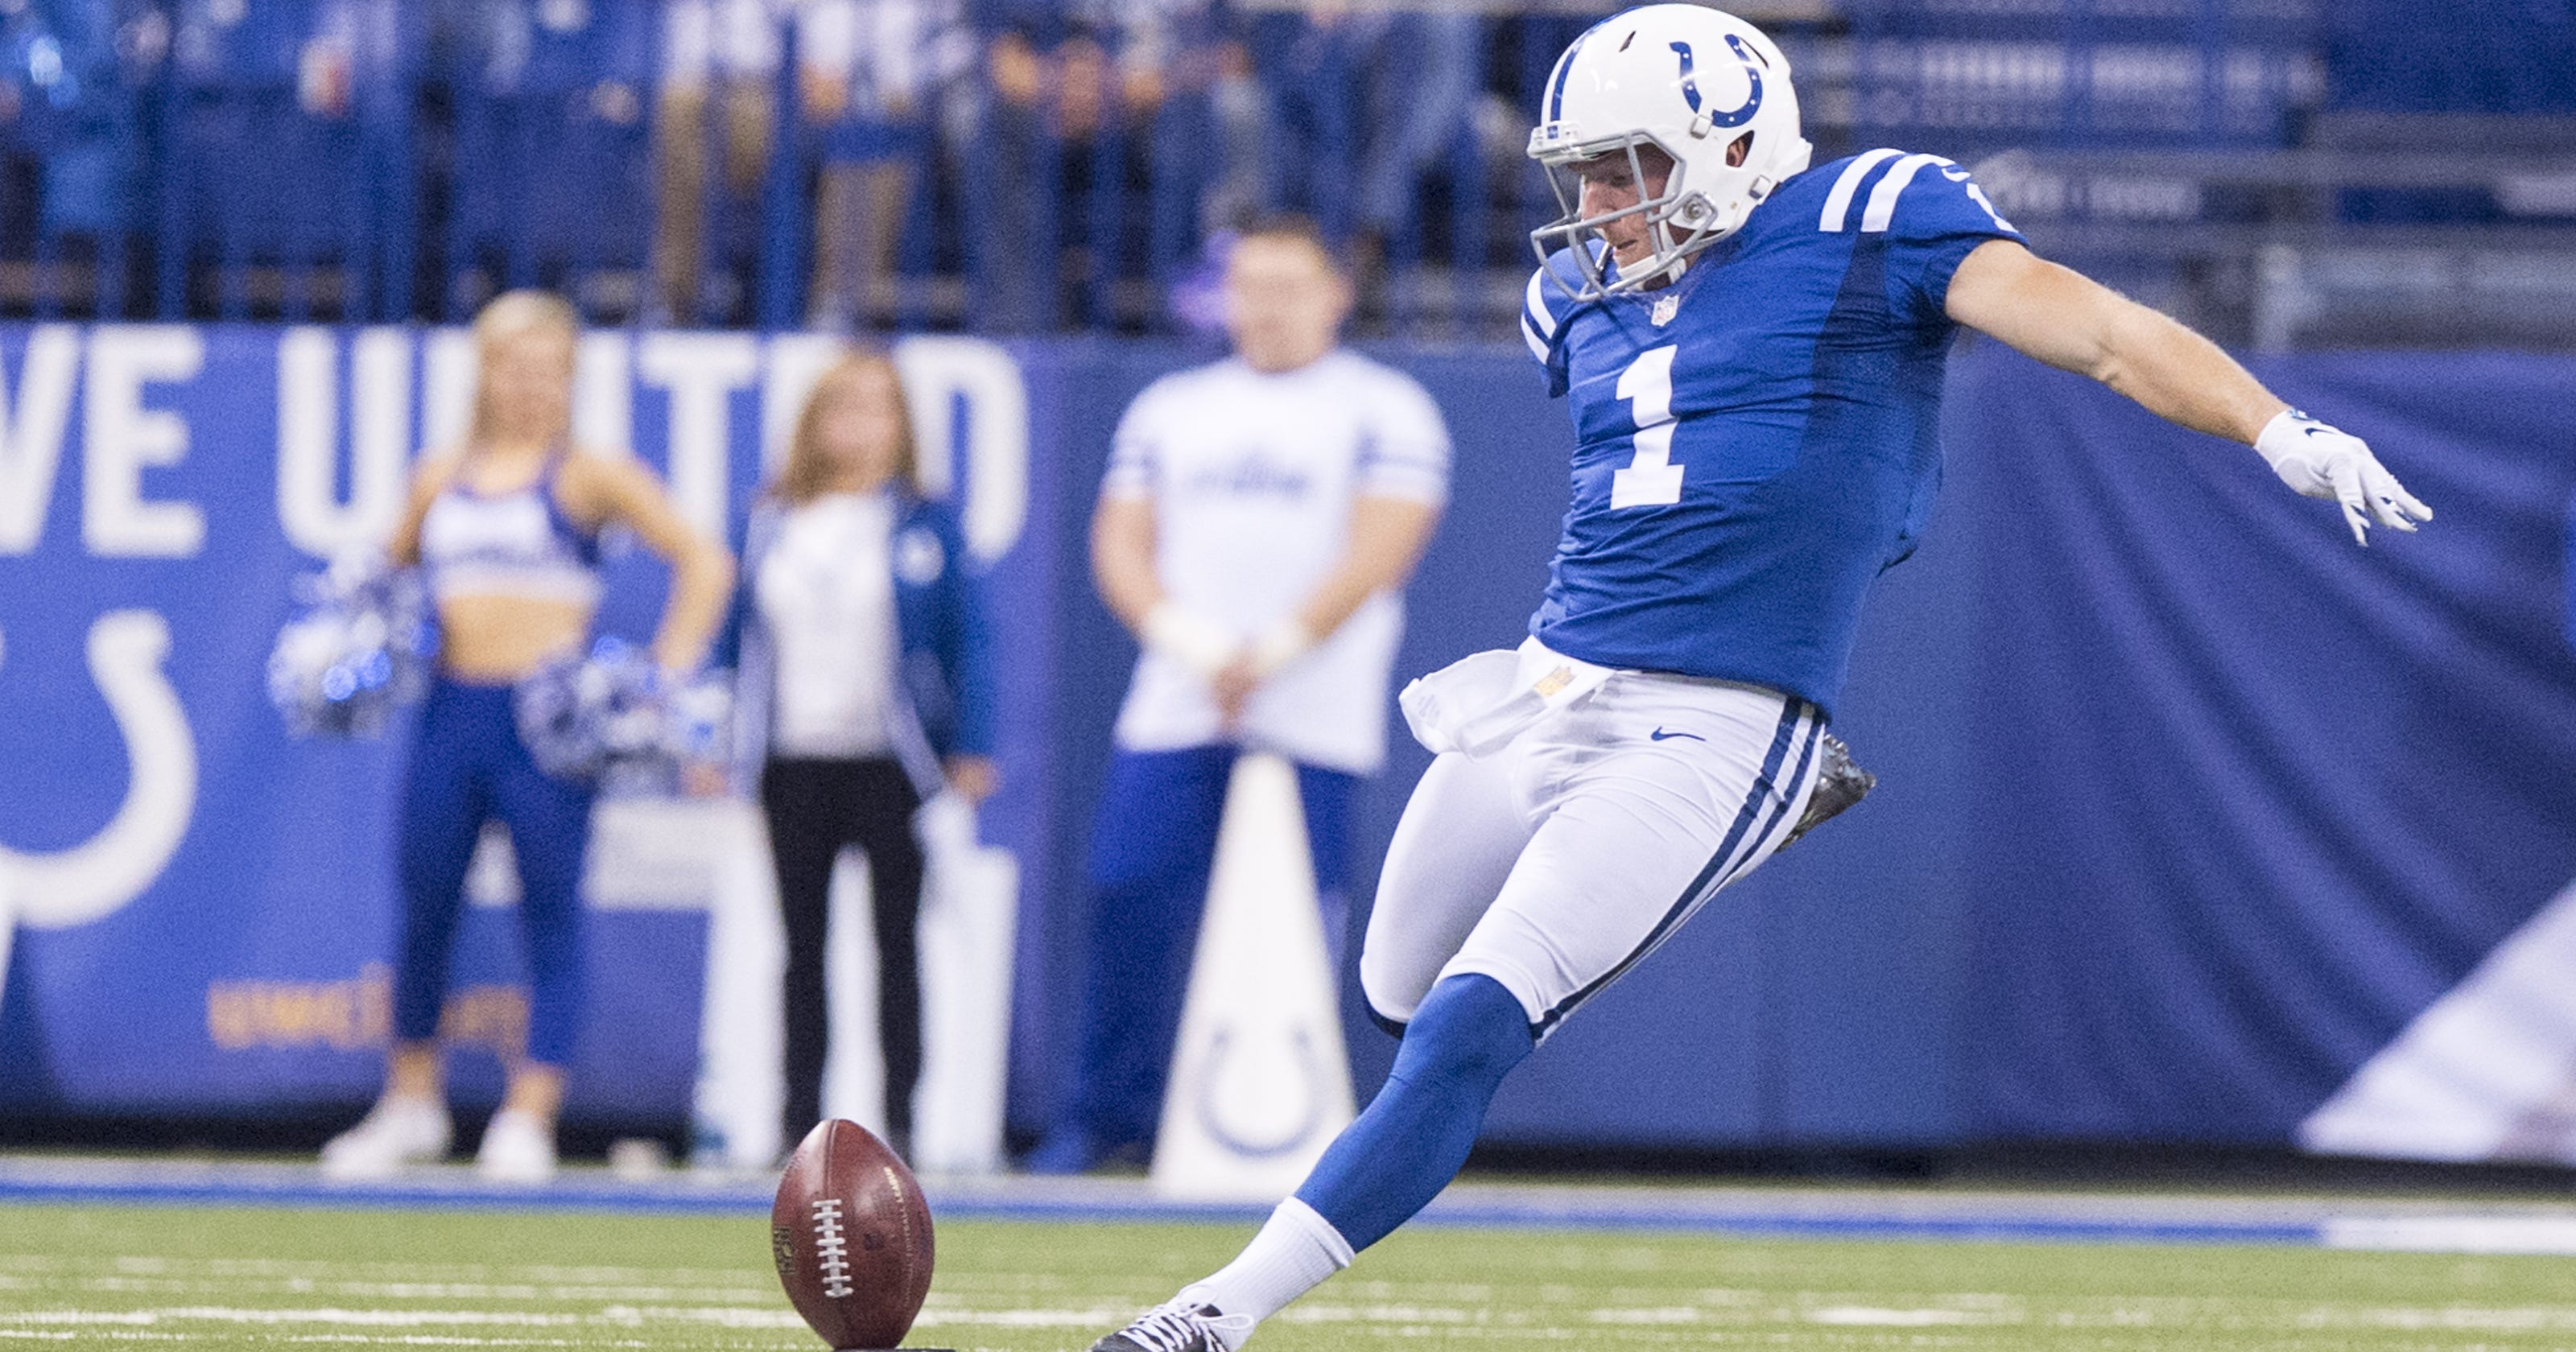 Pat McAfee: Ryan Grigson's reaction to Instagram post made